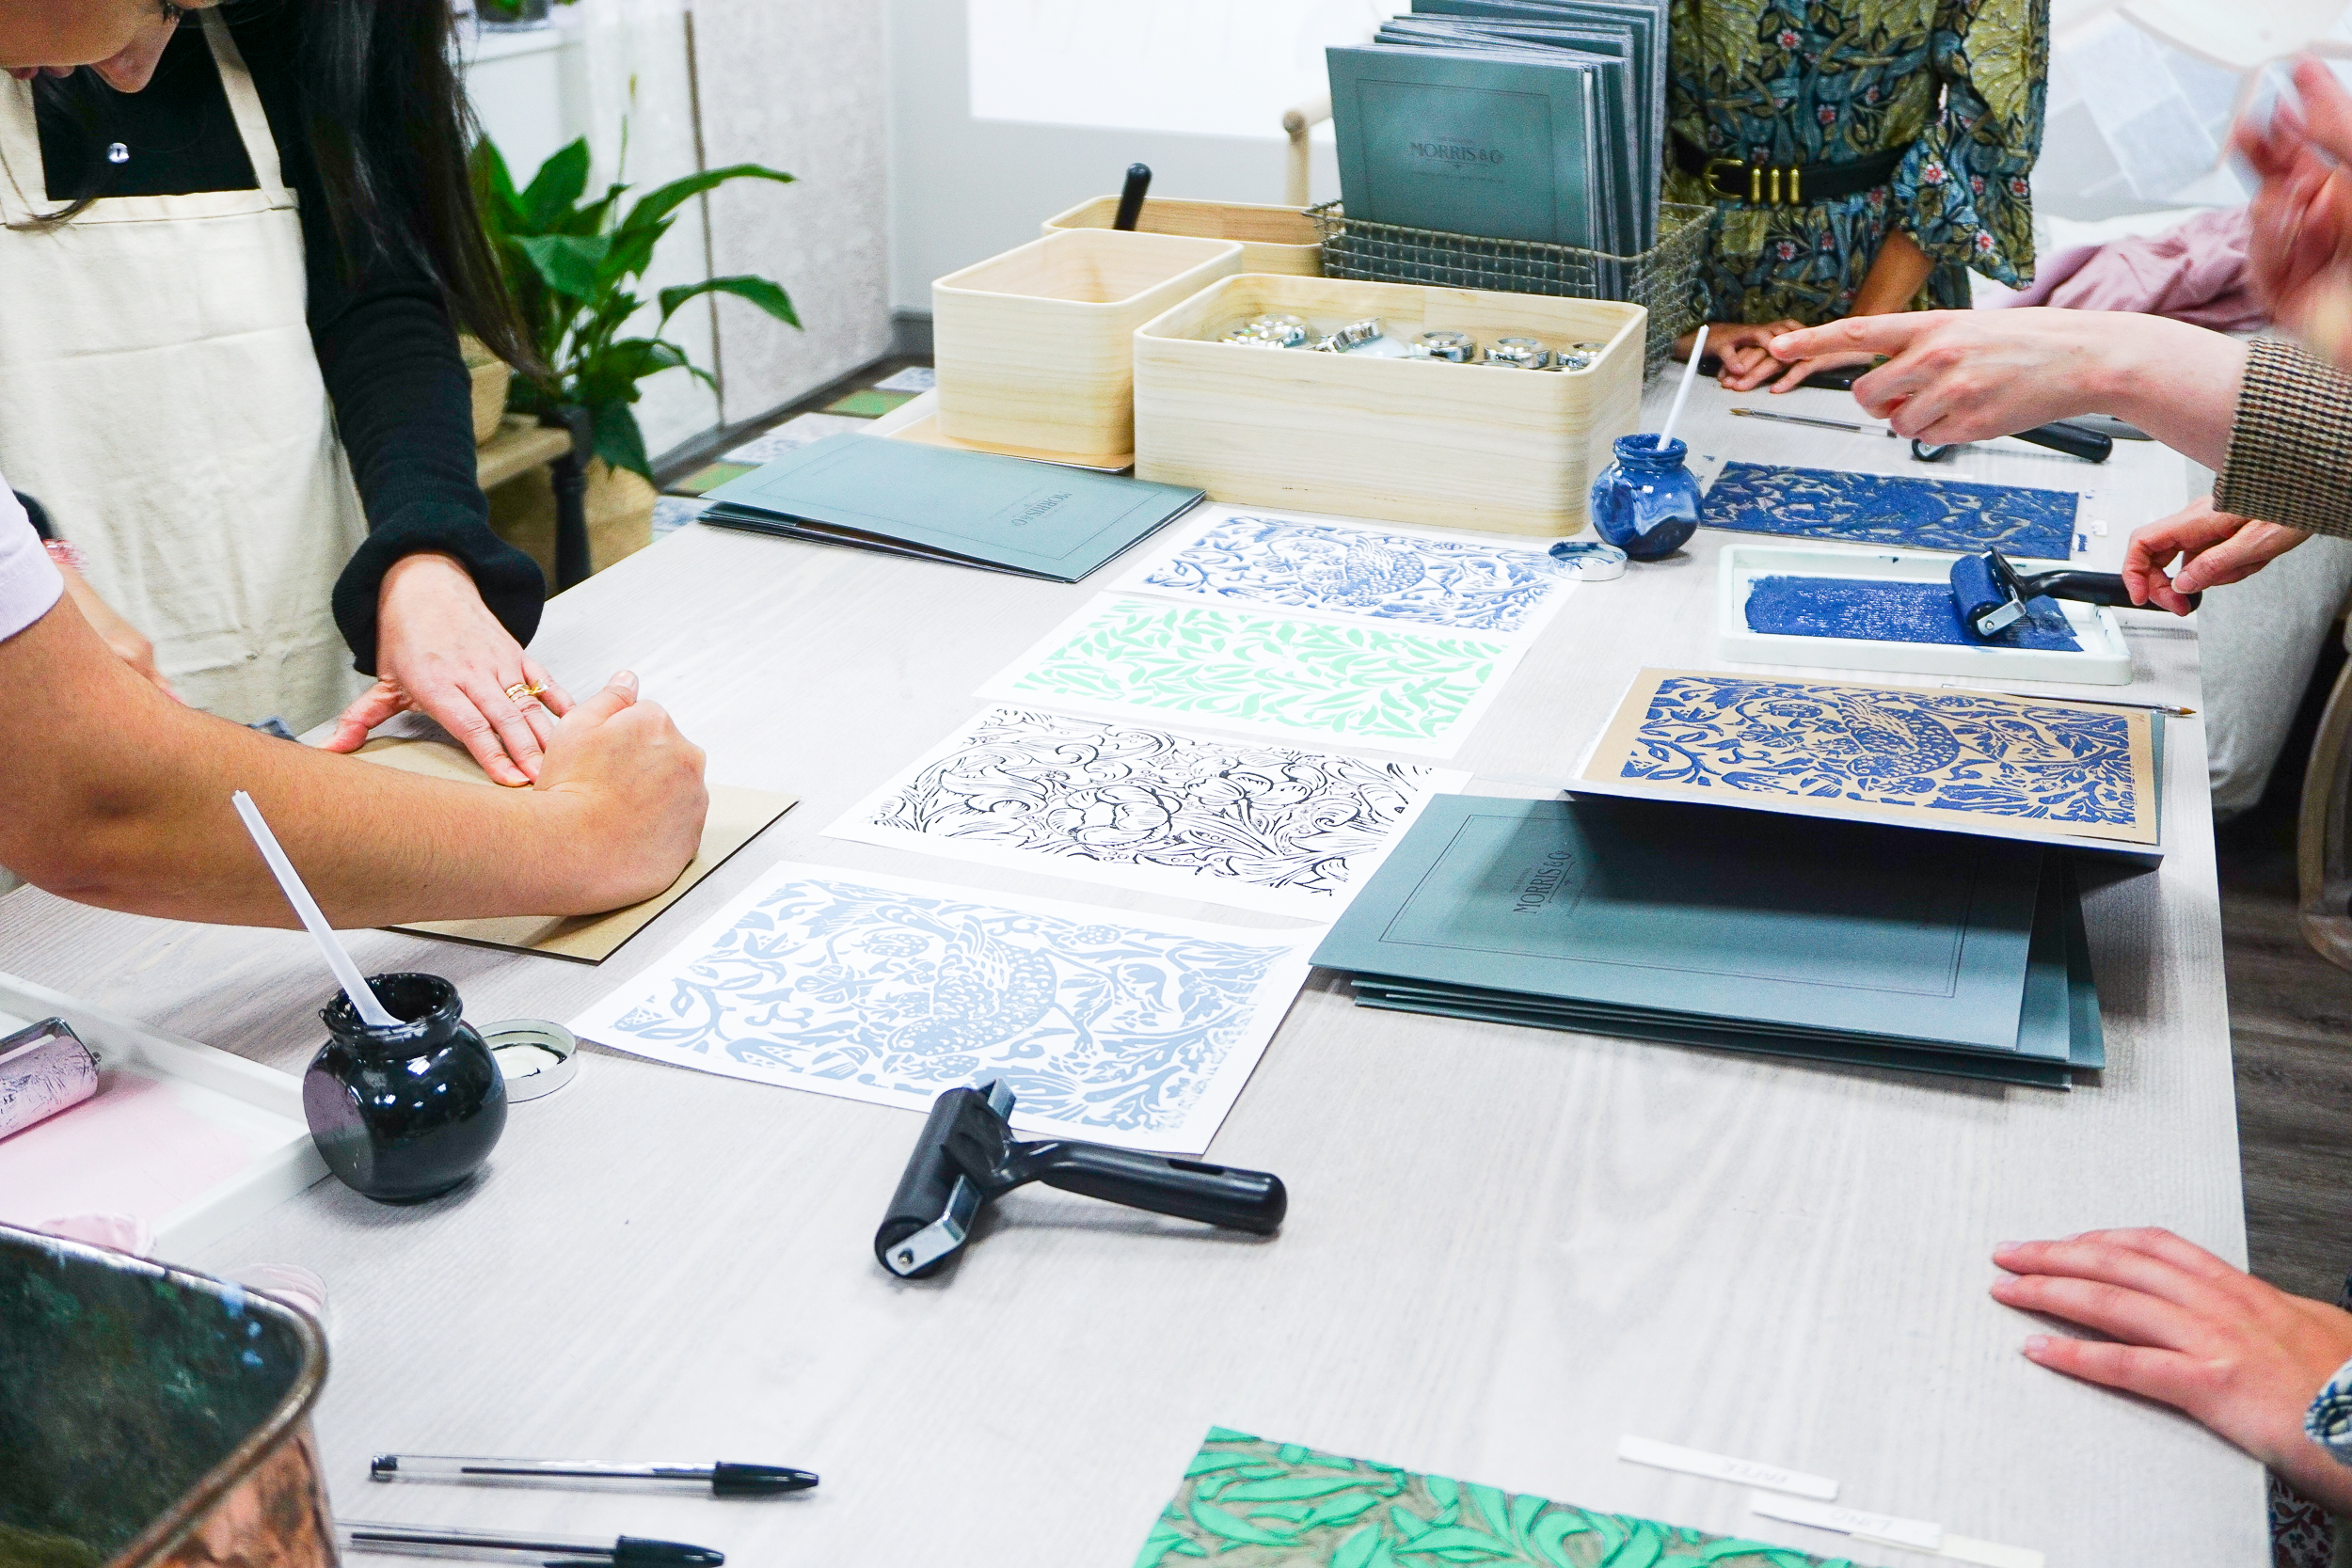 Behind the scenes at Morris & Co and the new Melsetter collection